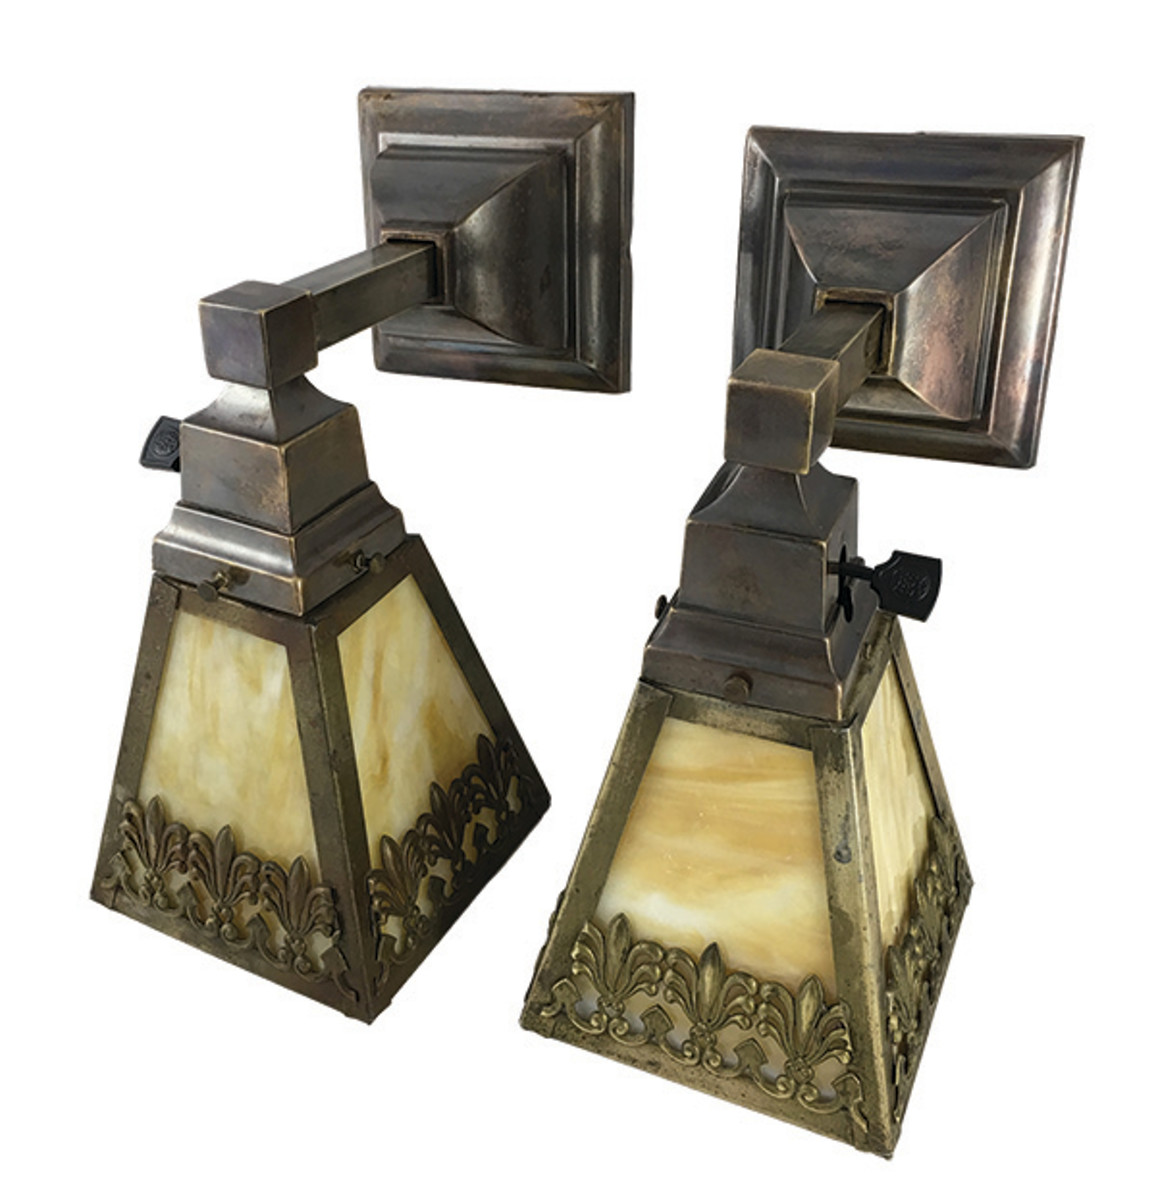 The folks at Historic Houseparts brushed up a pair of early 20th-century sconces by stripping later gold paint and cleaning brass underneath without damaging patina. The lights also got period-appropriate flat key sockets and new art-glass panels to replace missing glass.